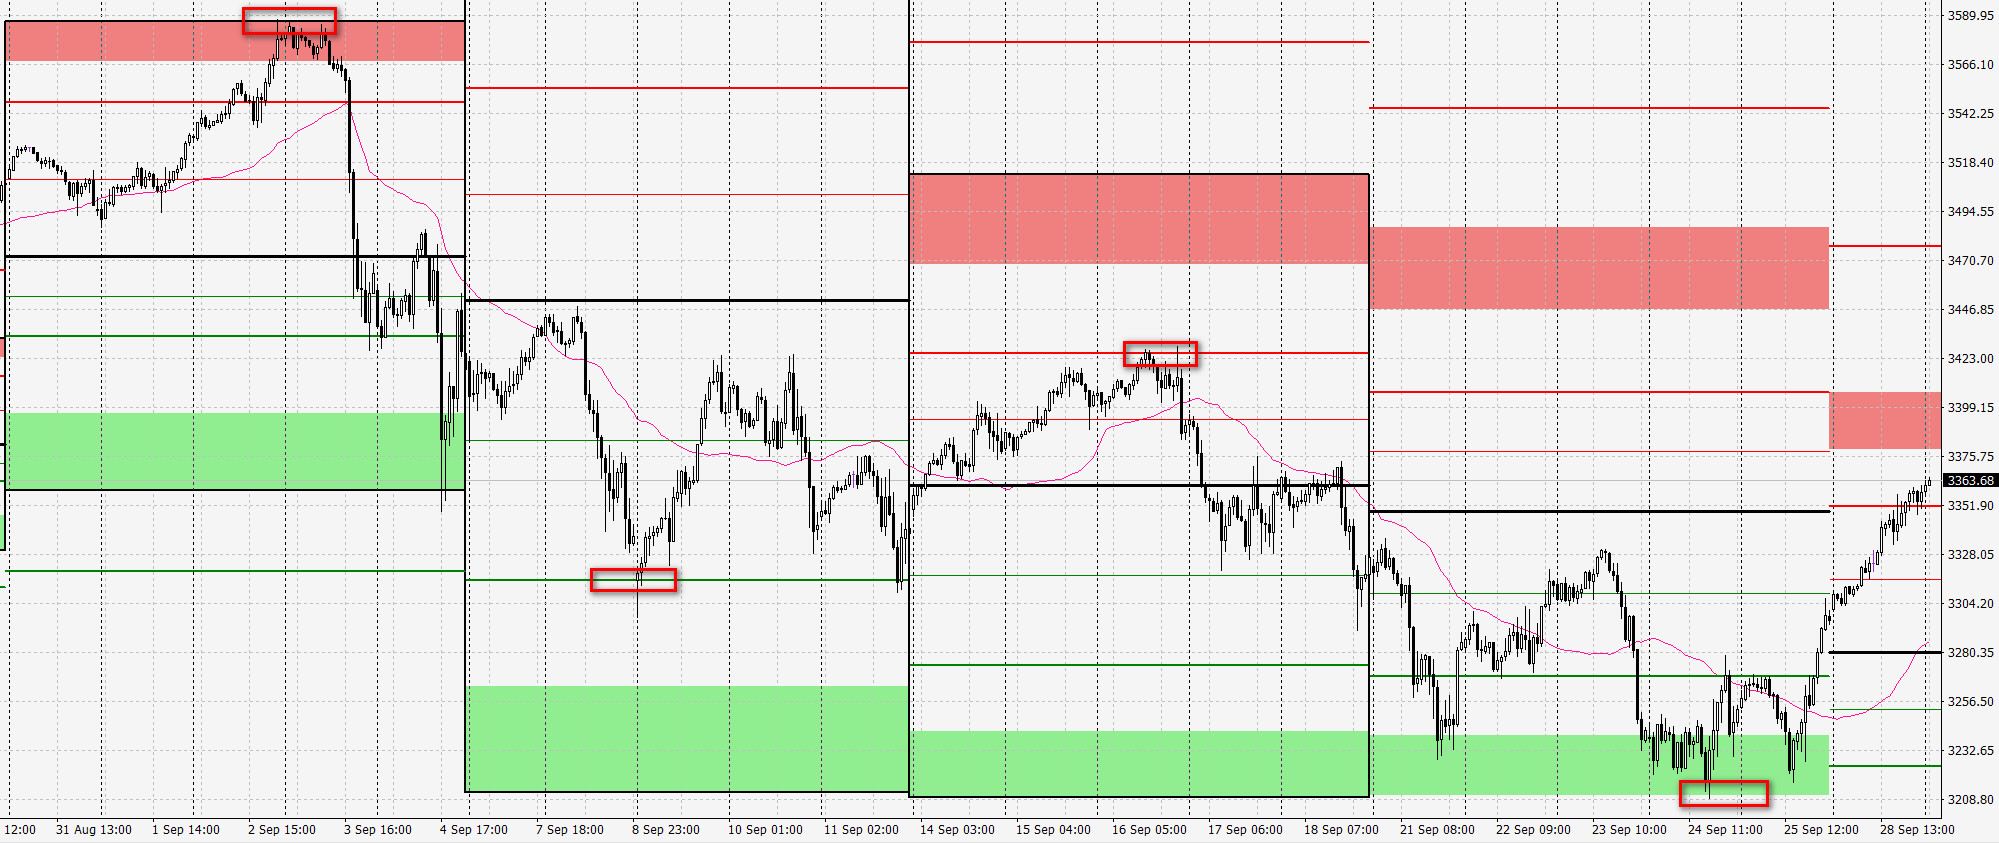 sp500 weekly pivot points